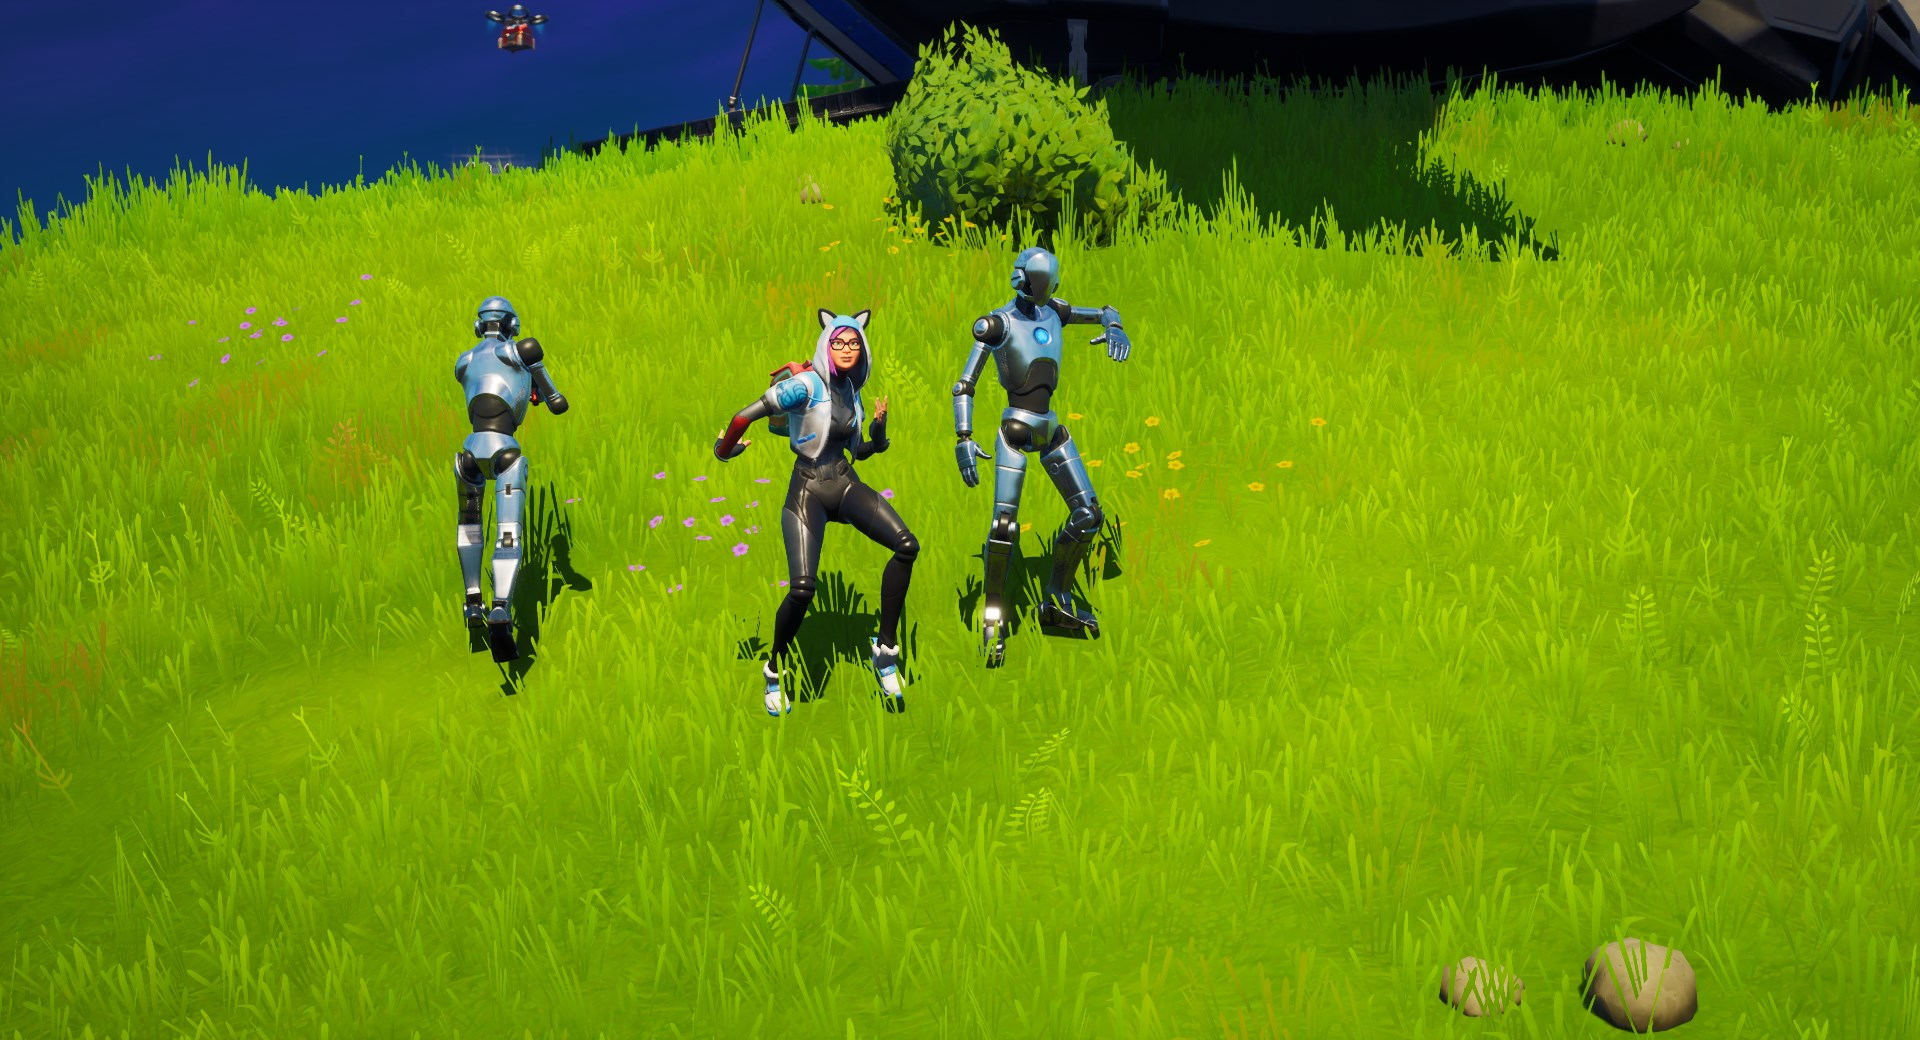 Fortnite character dancing with a Stark Robot